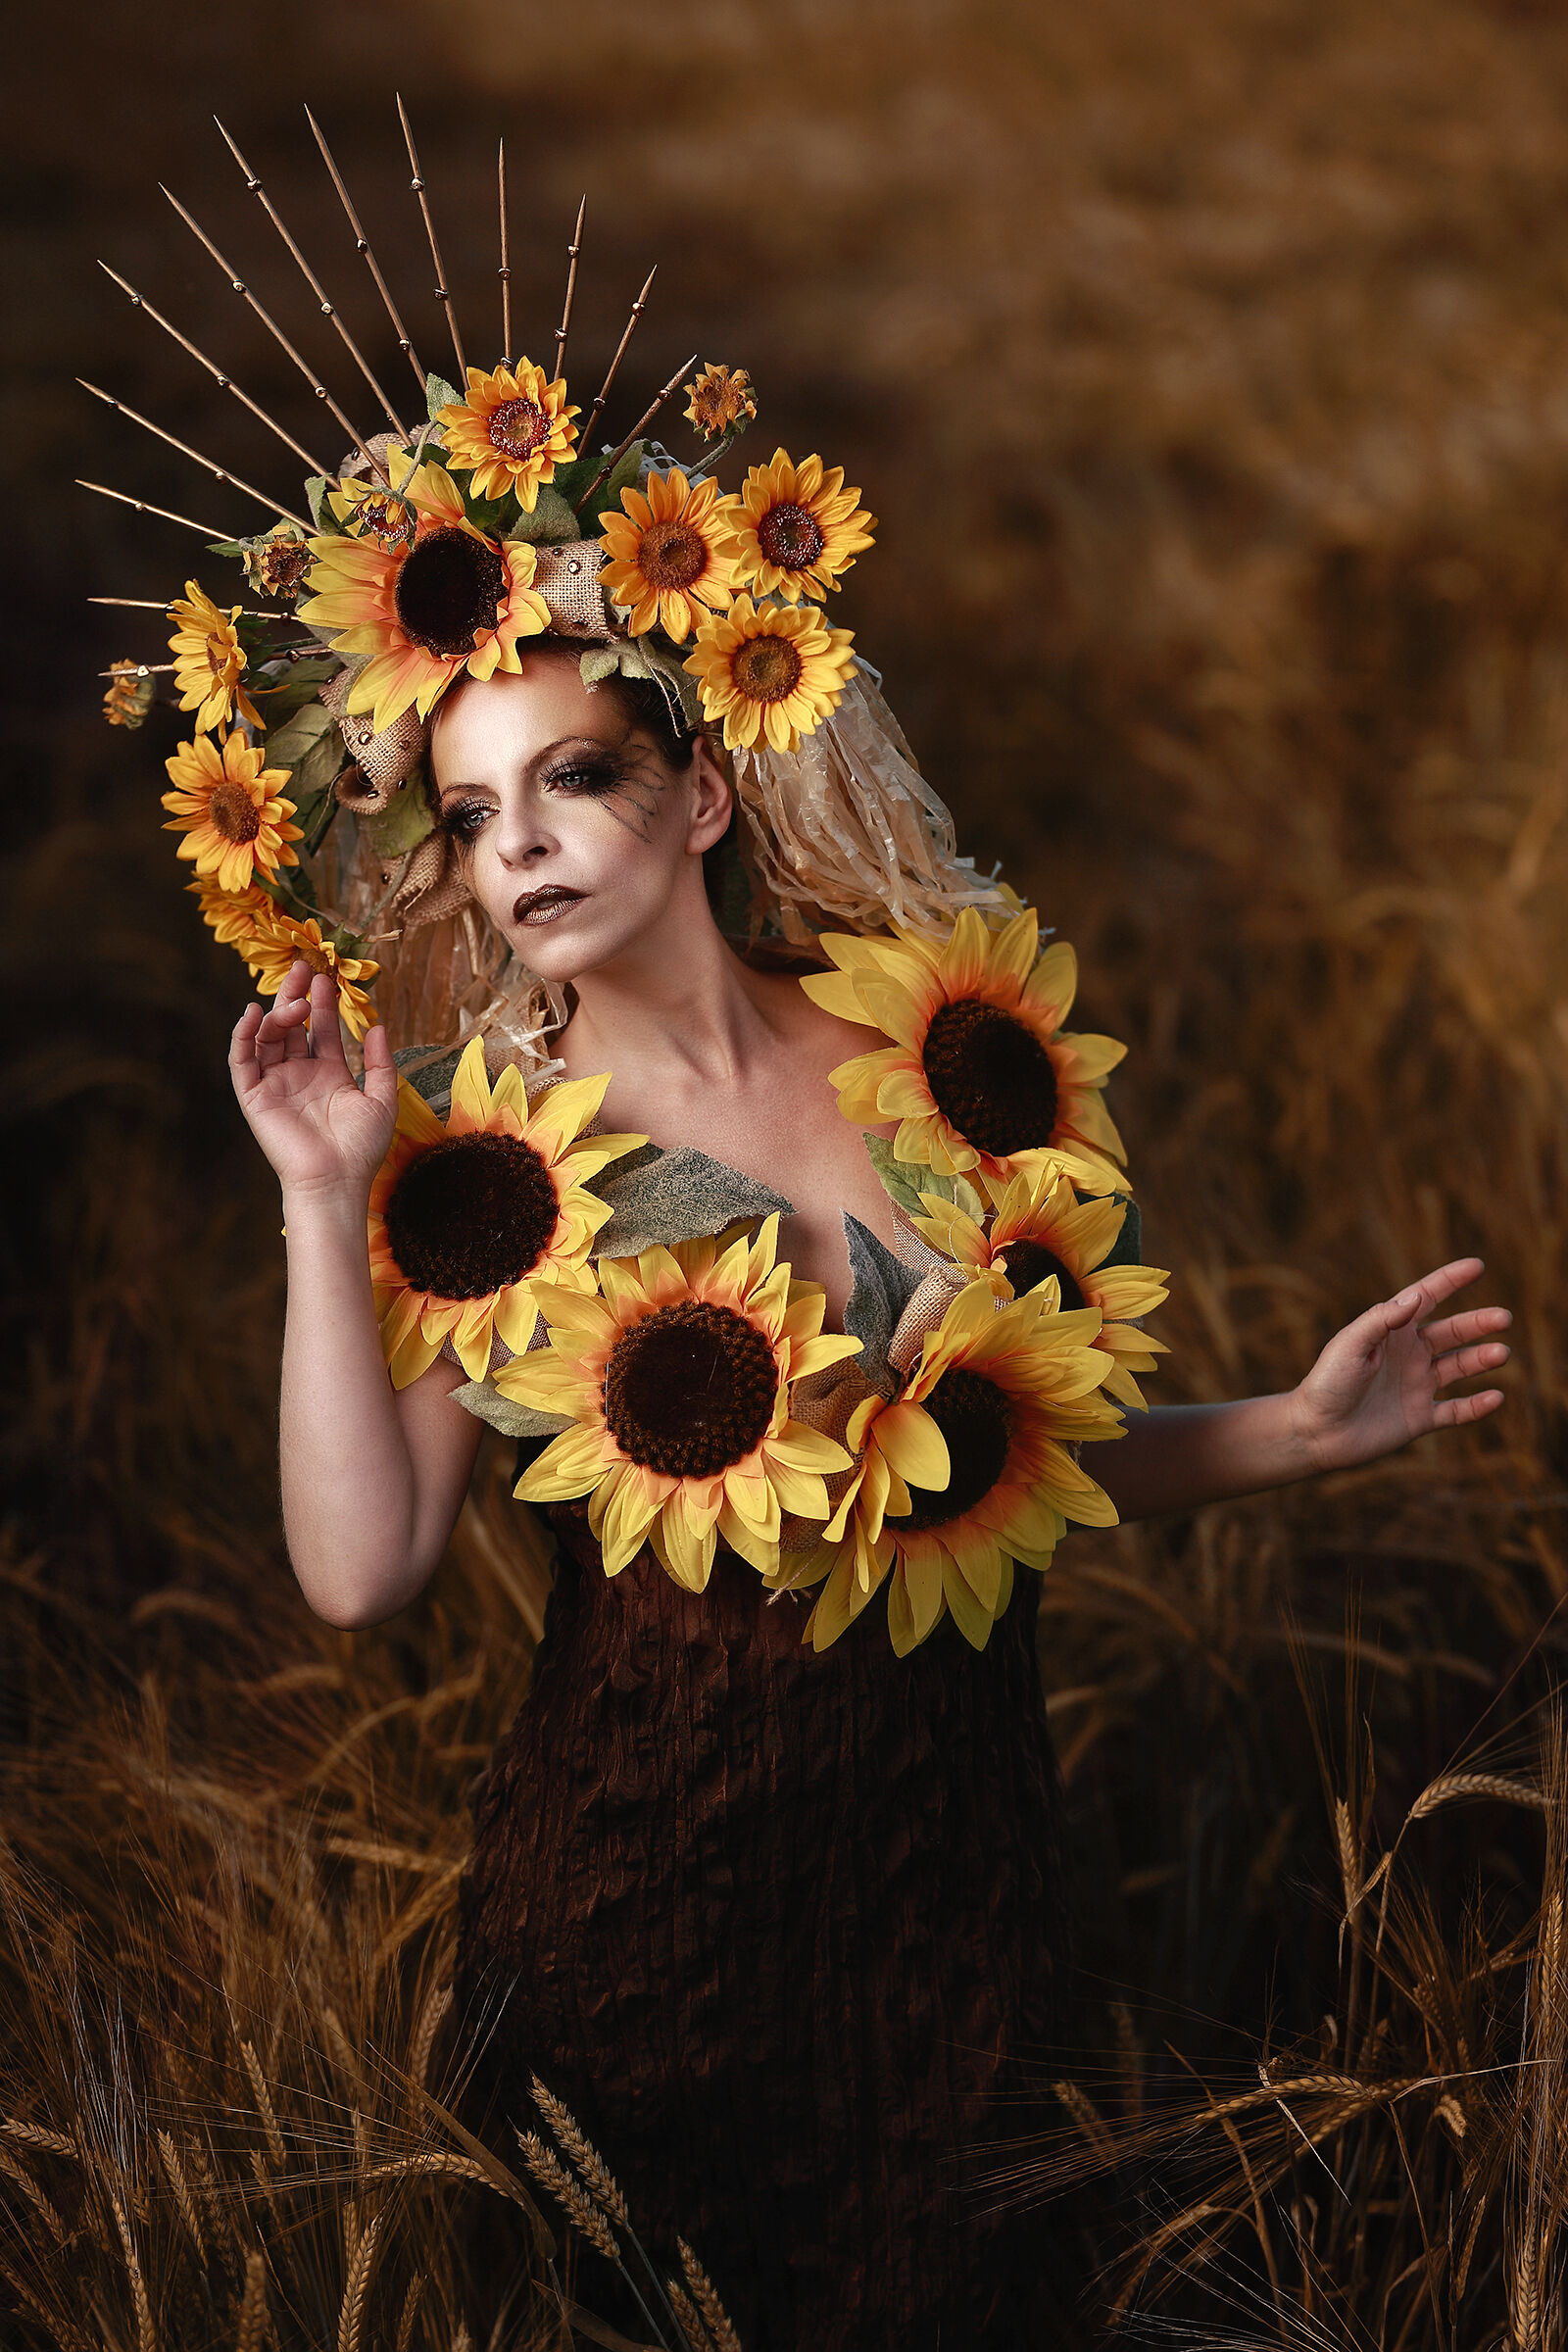 The sunflowers Lady's...